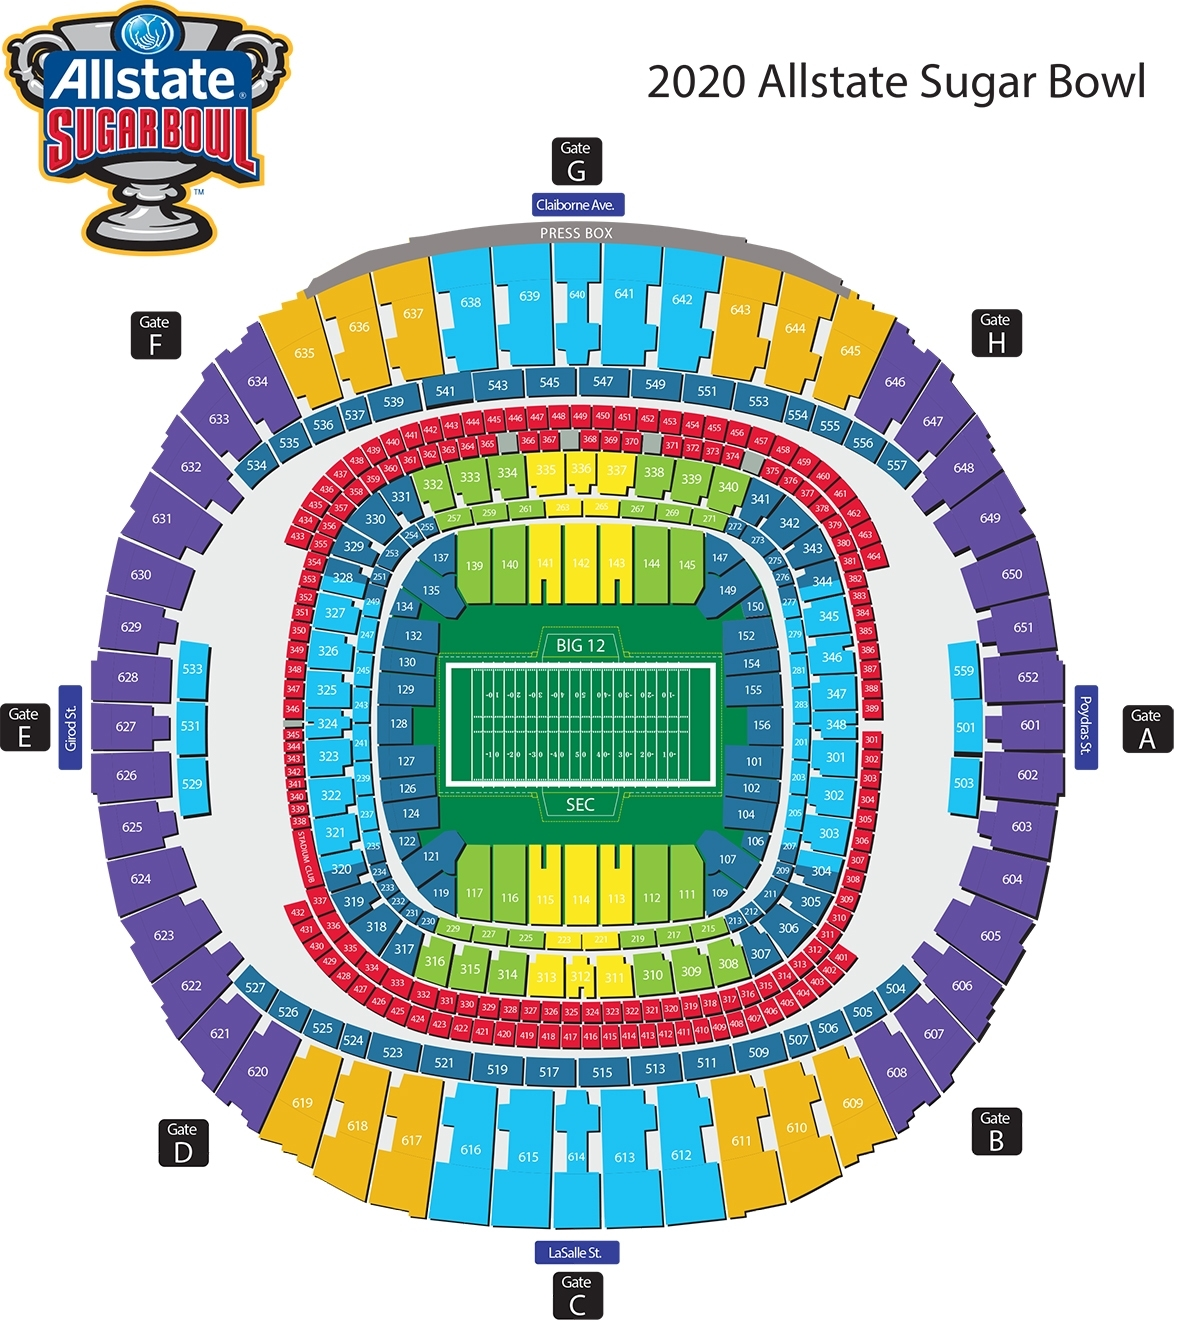 Seating Diagram - Official Site Of The Allstate Sugar Bowl intended for Seating Capacity At Super Bowl